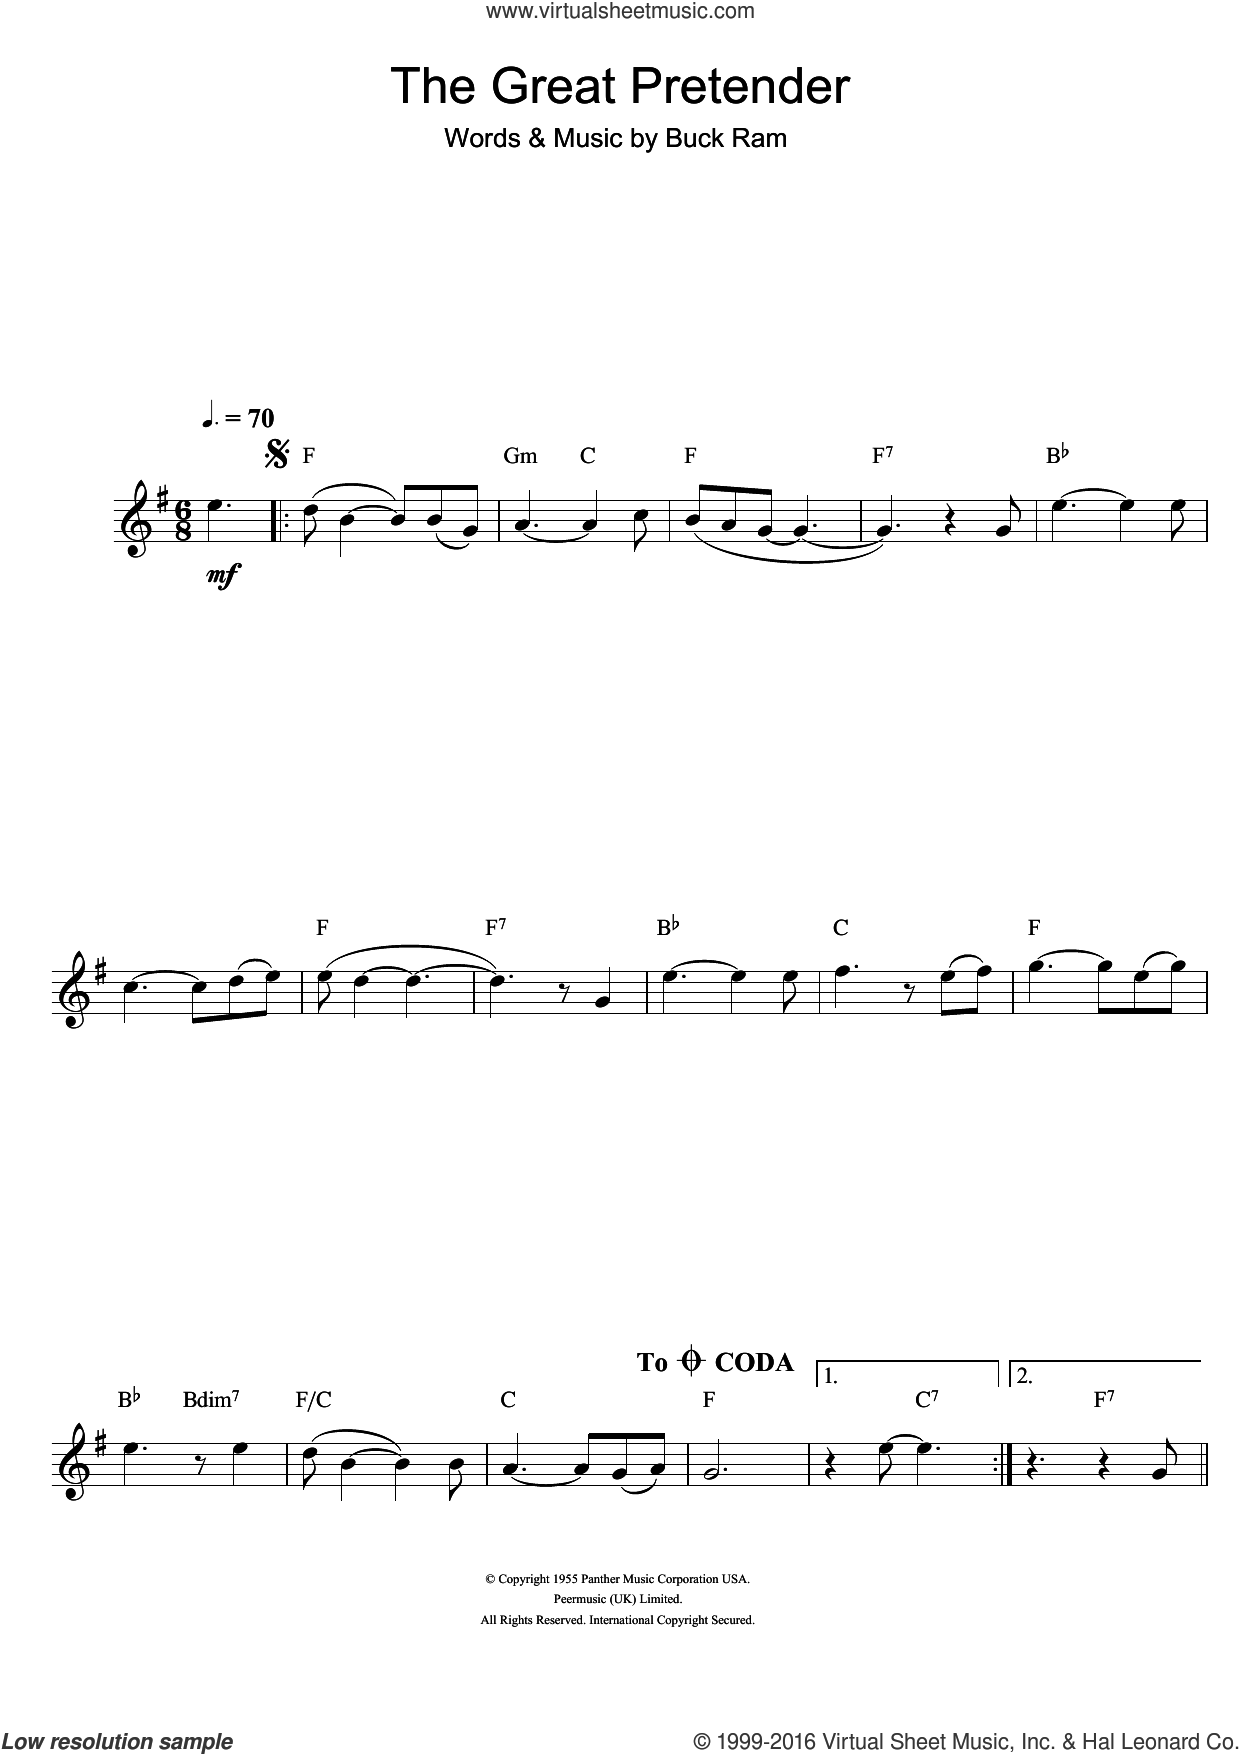 The Great Pretender sheet music for clarinet solo by The Platters and Buck Ram, intermediate skill level